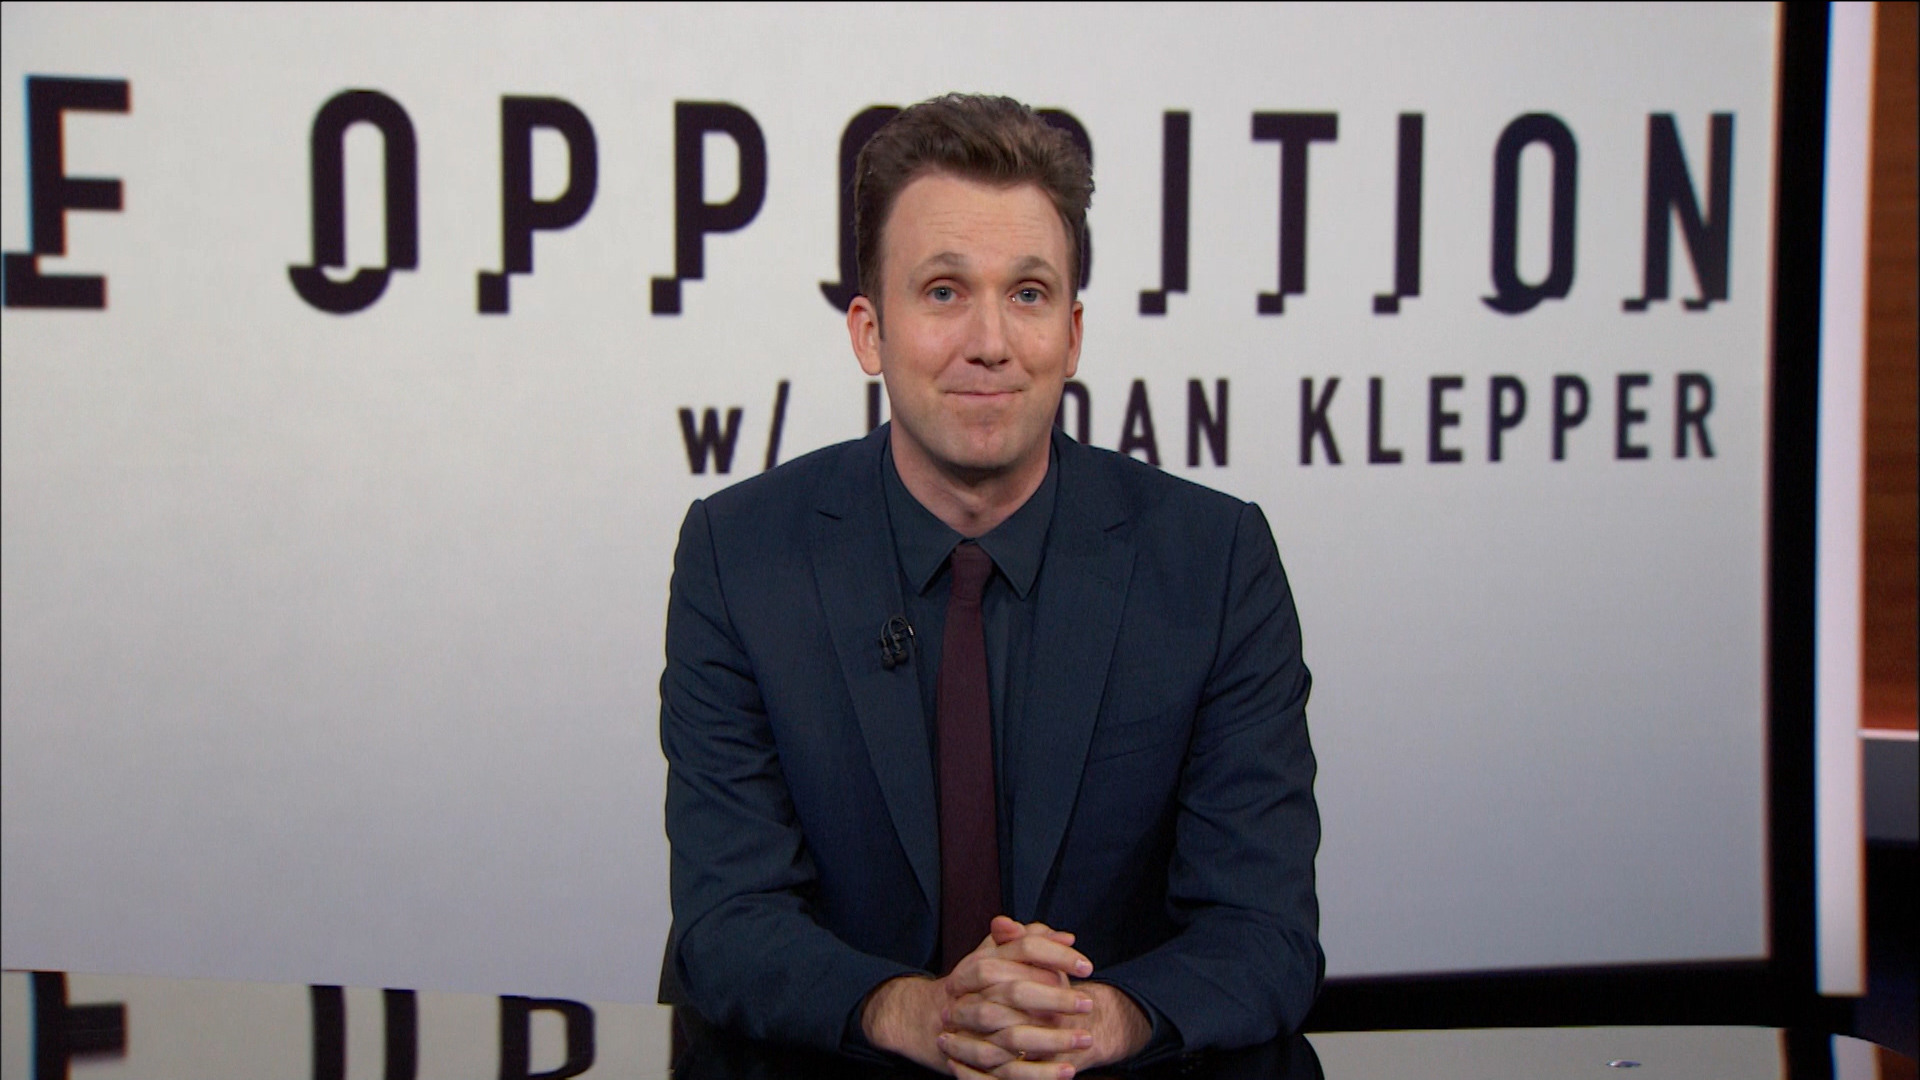 - INTRODUCING THE OPPOSITION W/ JORDAN KLEPPER